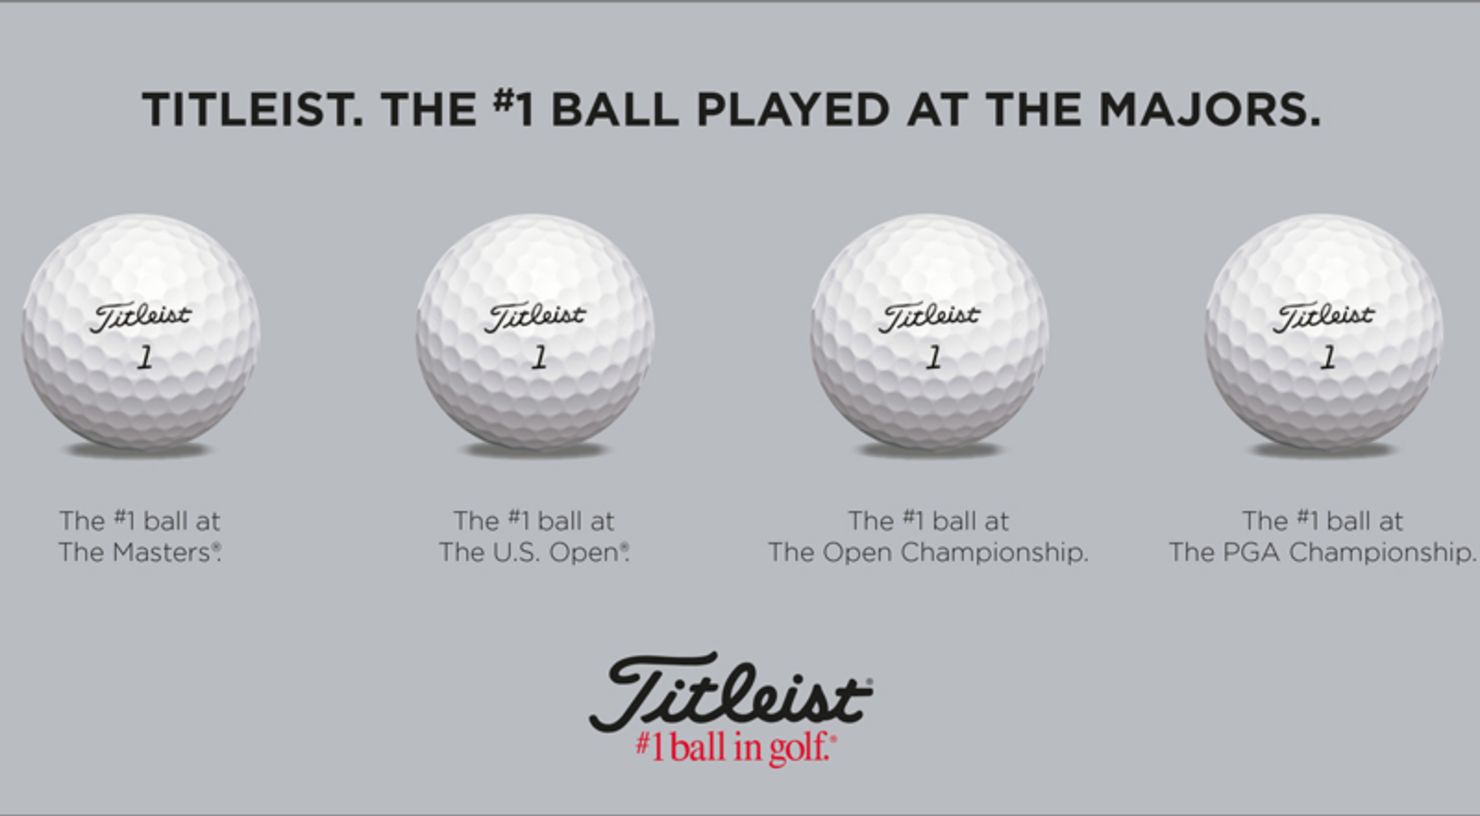 titleist the number one ball in golf.png